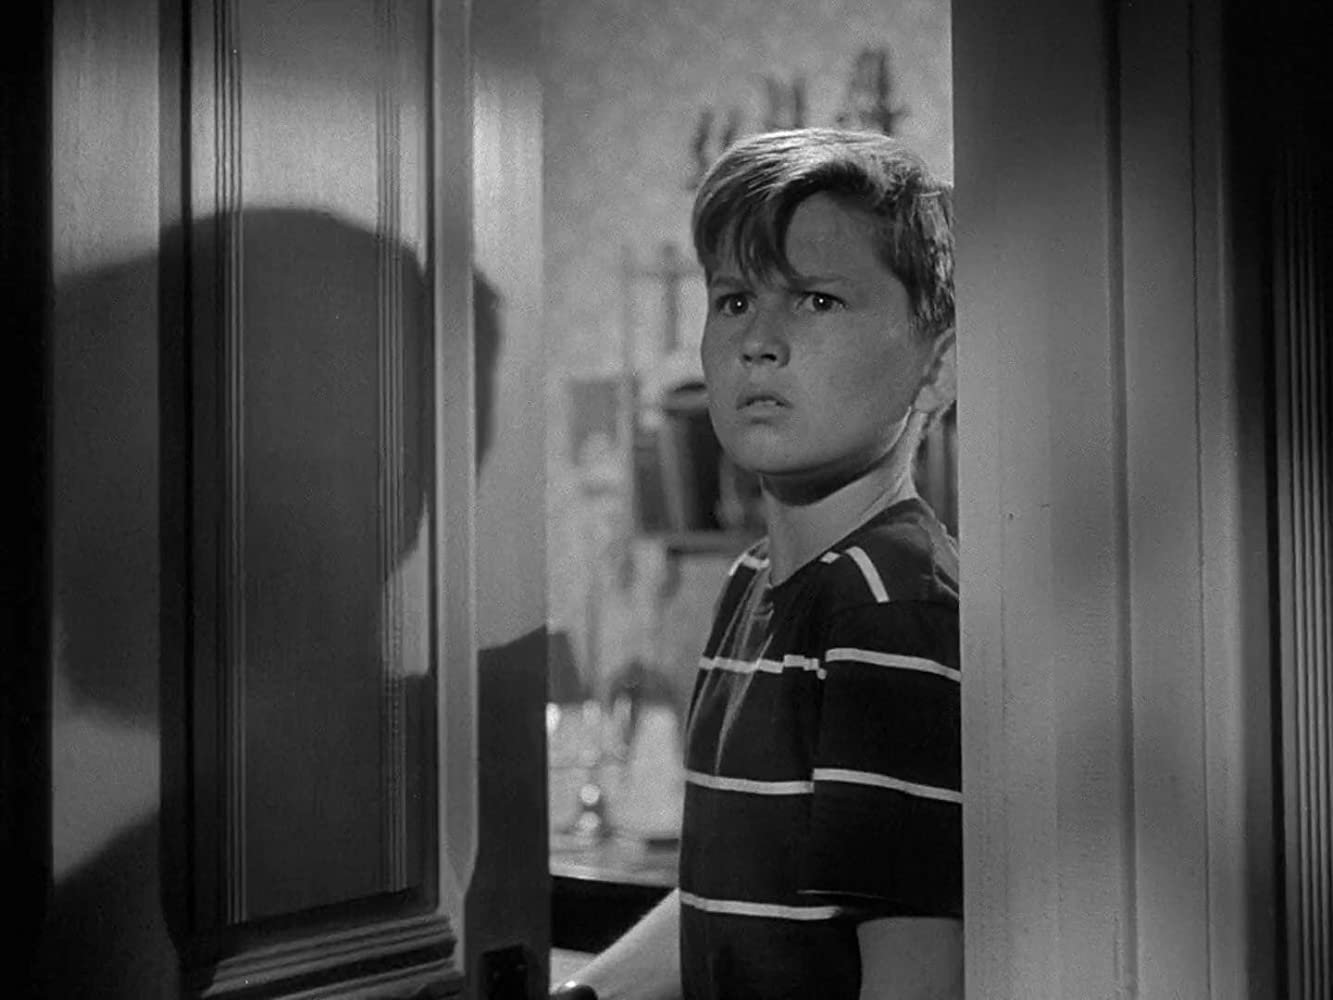 Billy Gray in The Day the Earth Stood Still (1951)